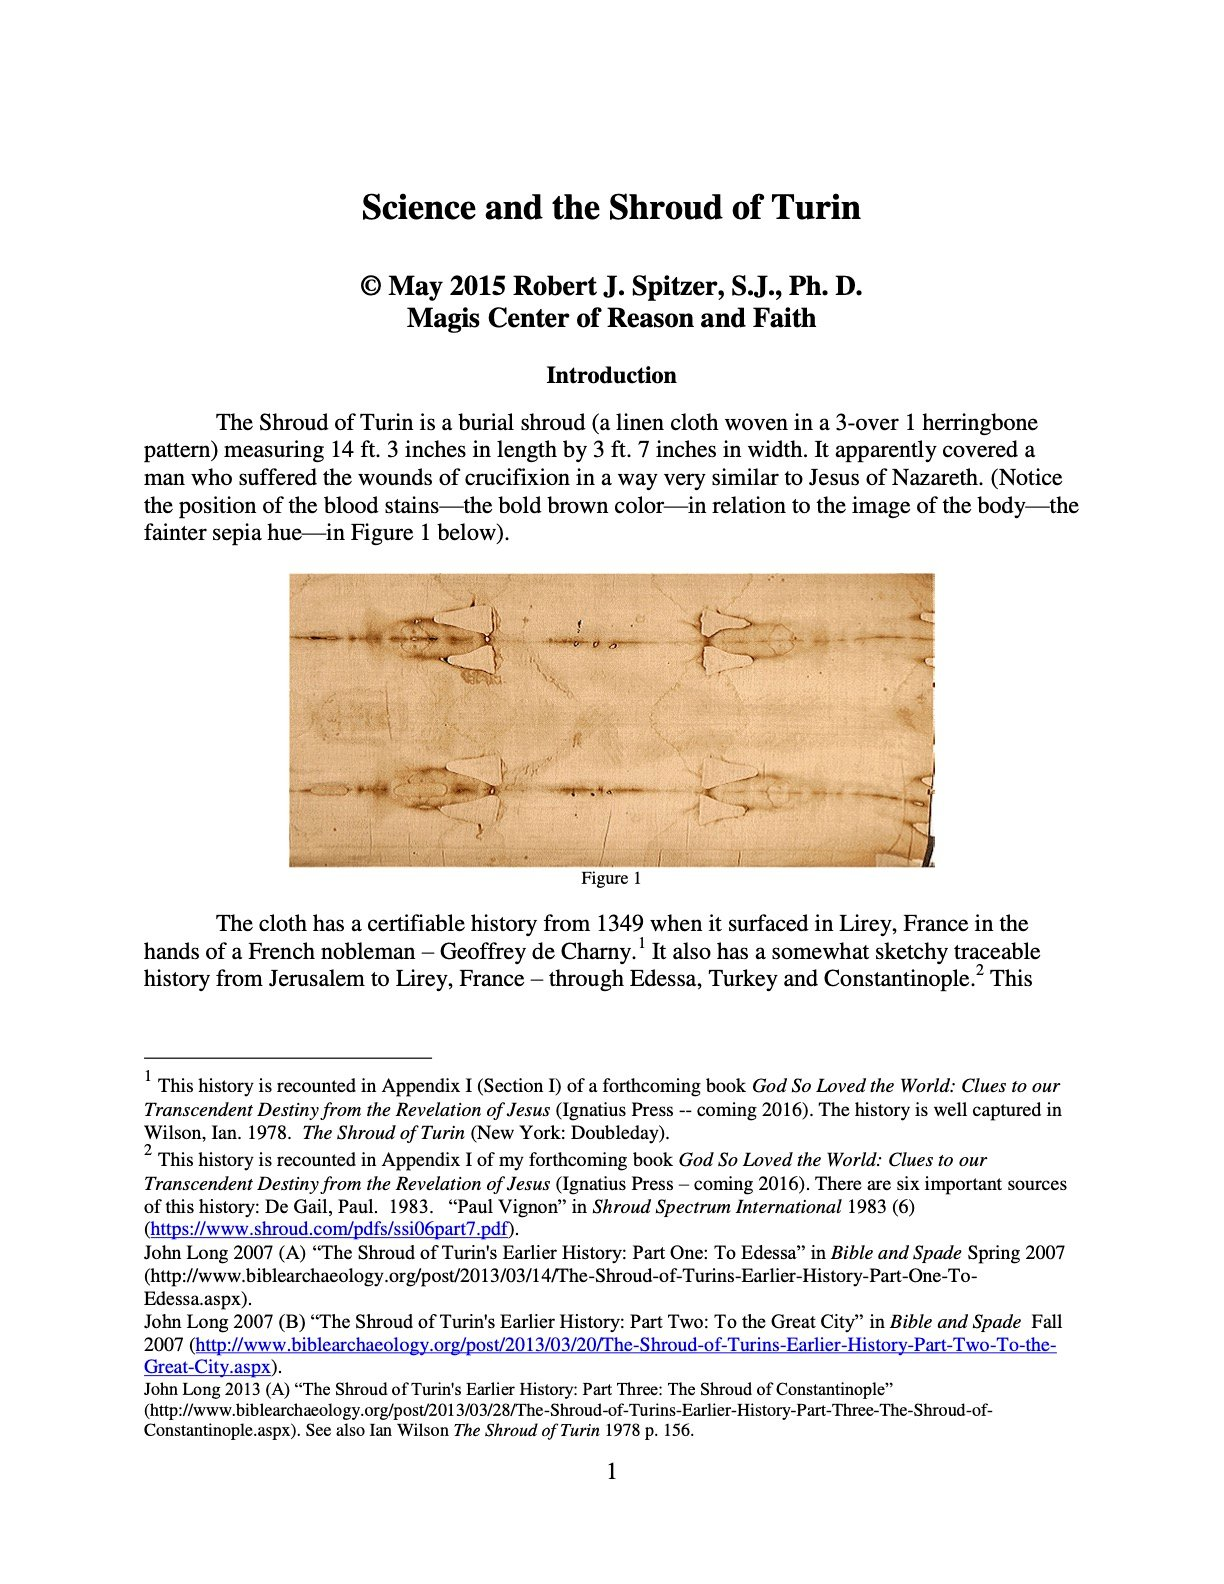 Science_and_the_Shroud_of_Turin_page_1